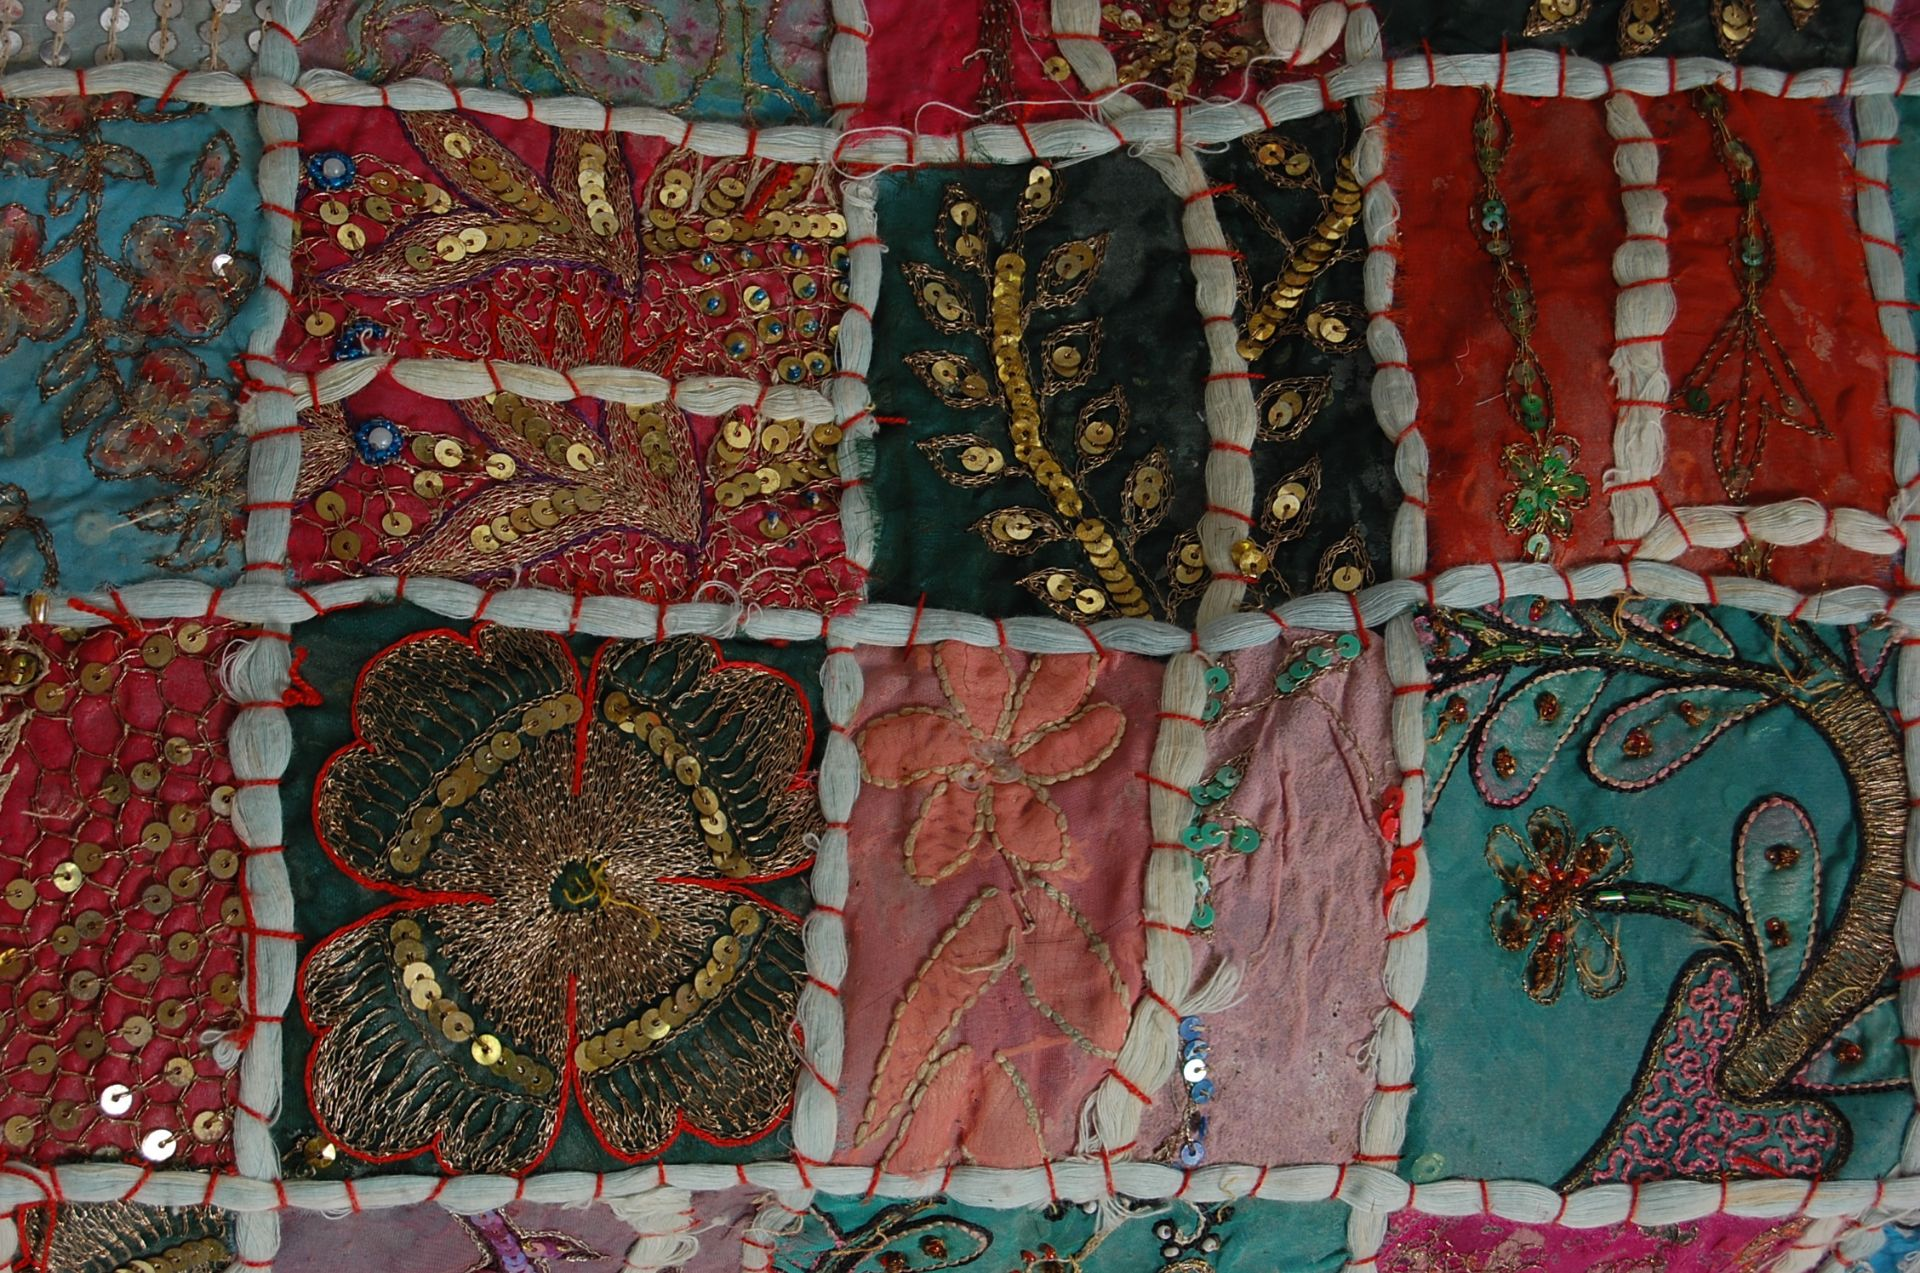 20TH CENTURY ANTIQUE STYLE TRADITIONAL PAKISTANI / RAJASTHANI / INDIAN PATCHWORK QUILT BED THROW - Image 8 of 11